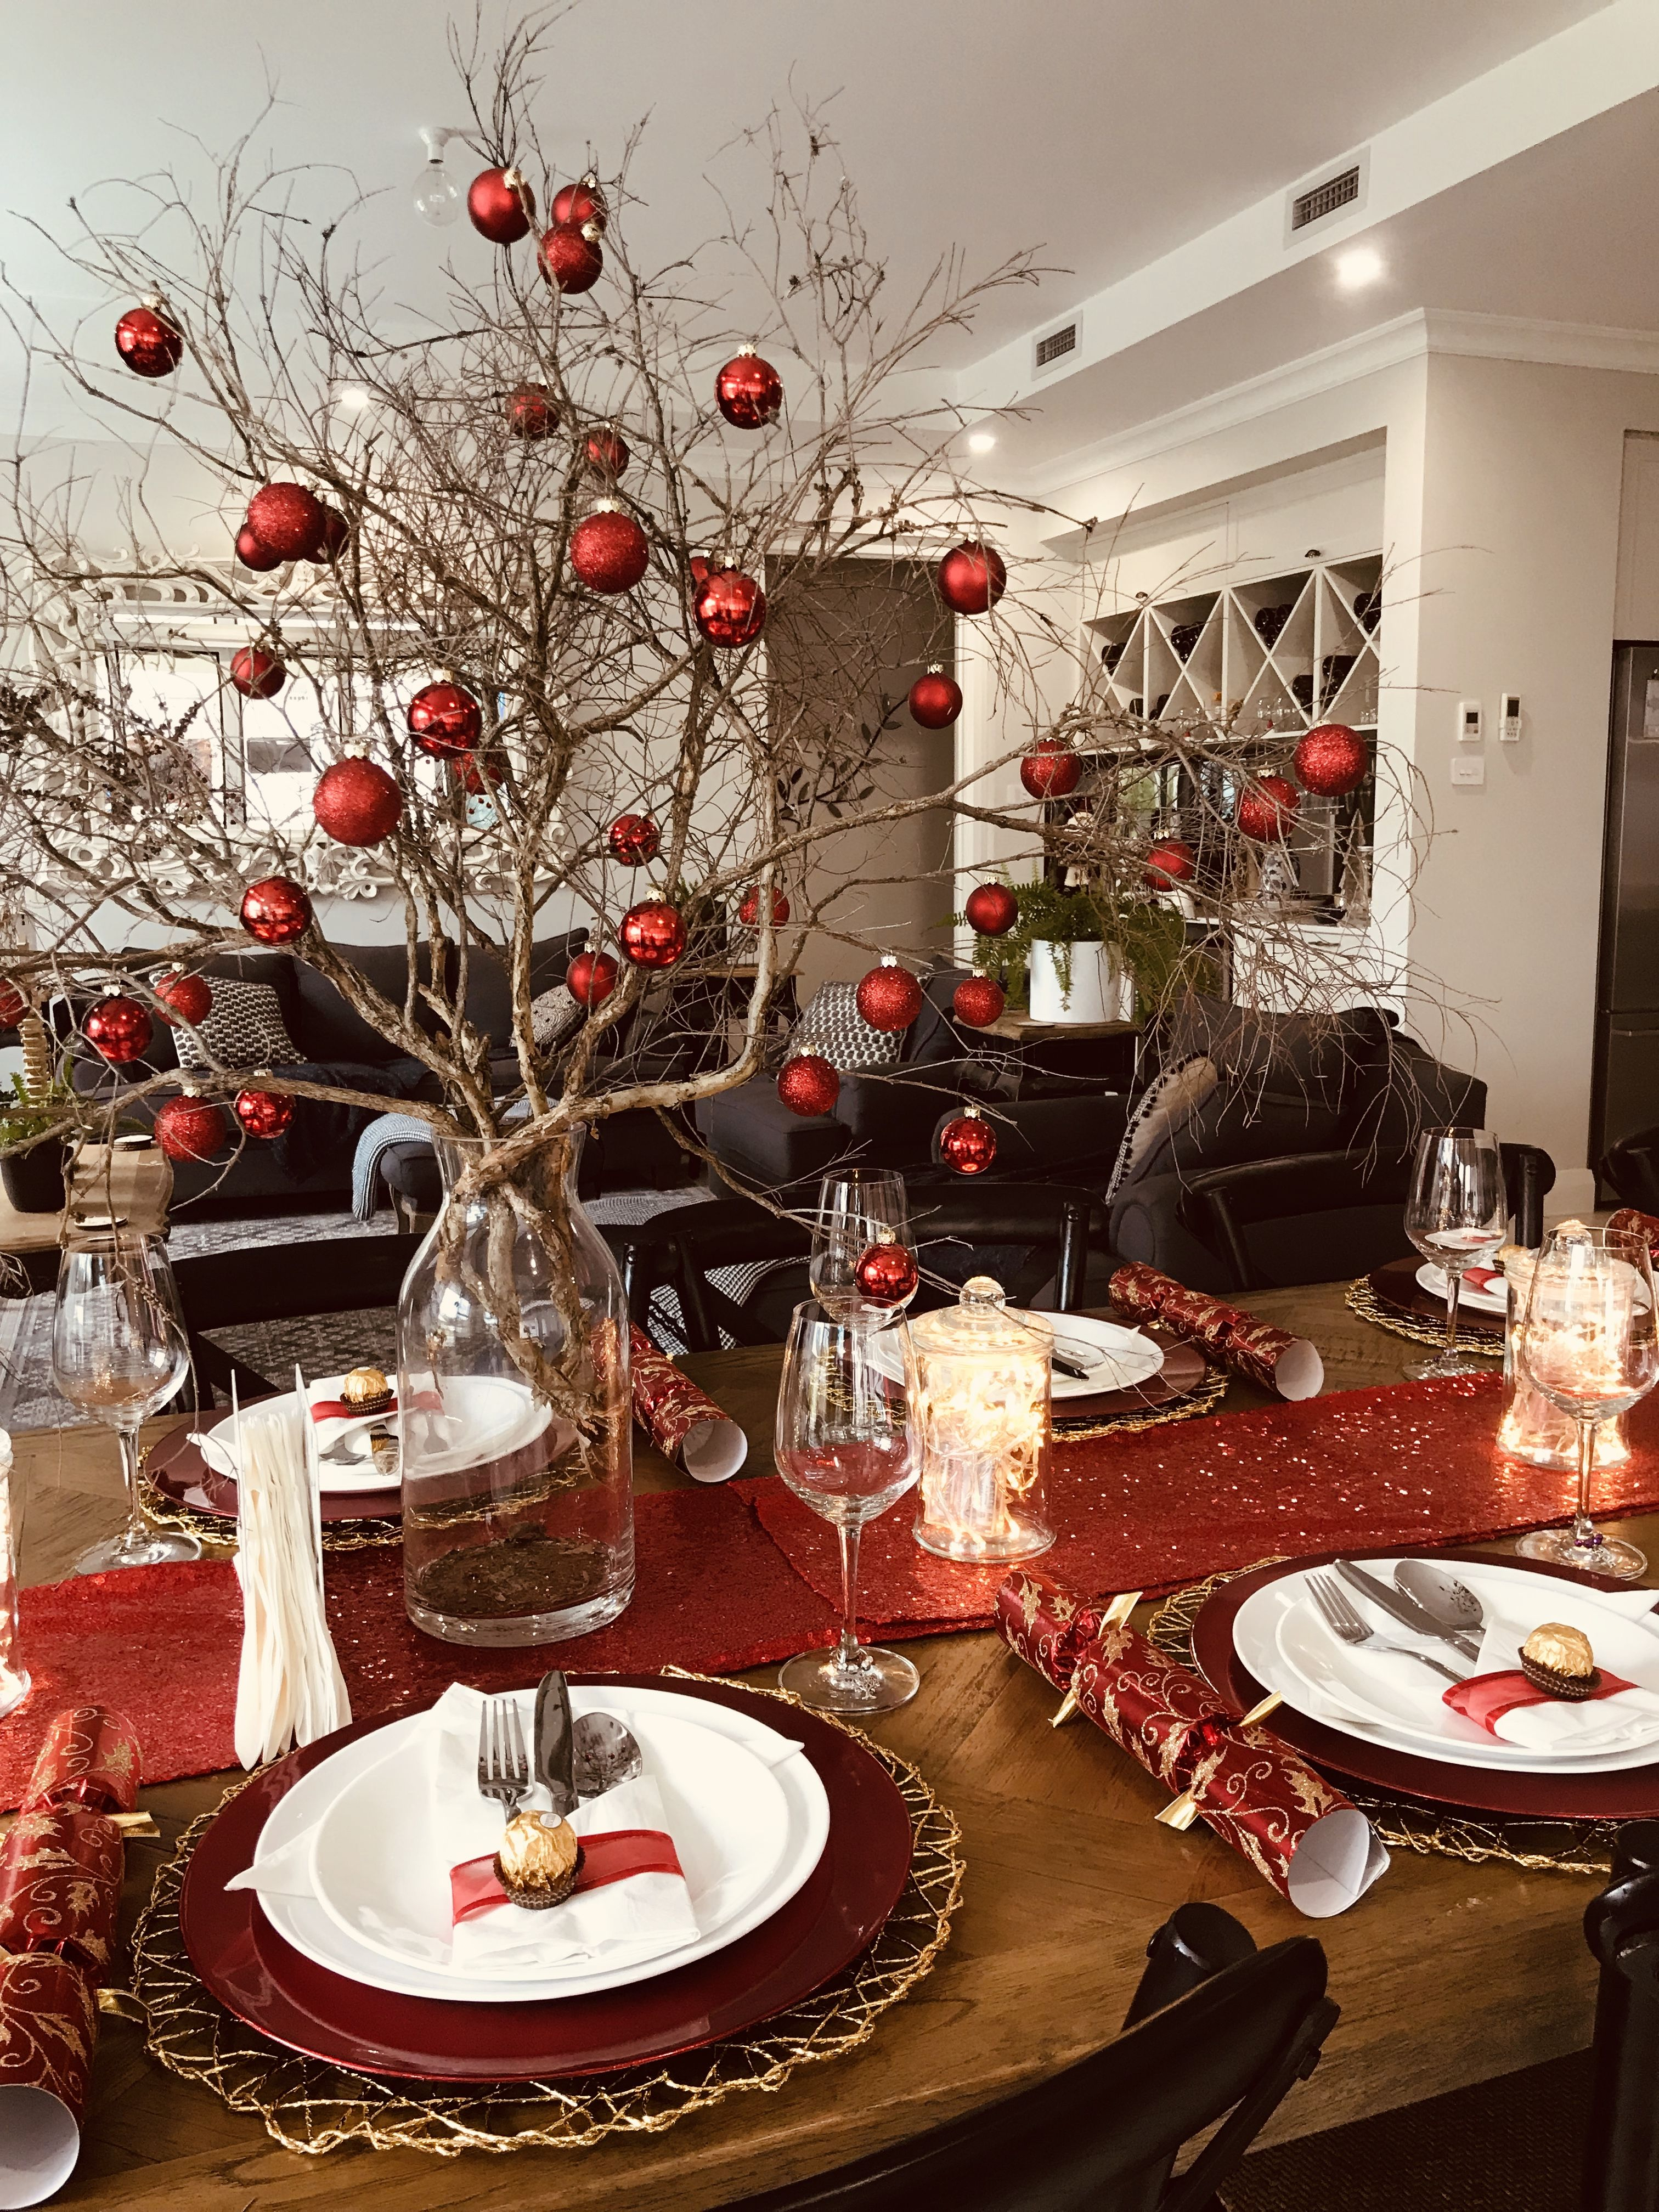 Christmas Table Setting With Gold Placemats Red Charger Plates Christmas Table Christmas Dinner Table Christmas Table Settings